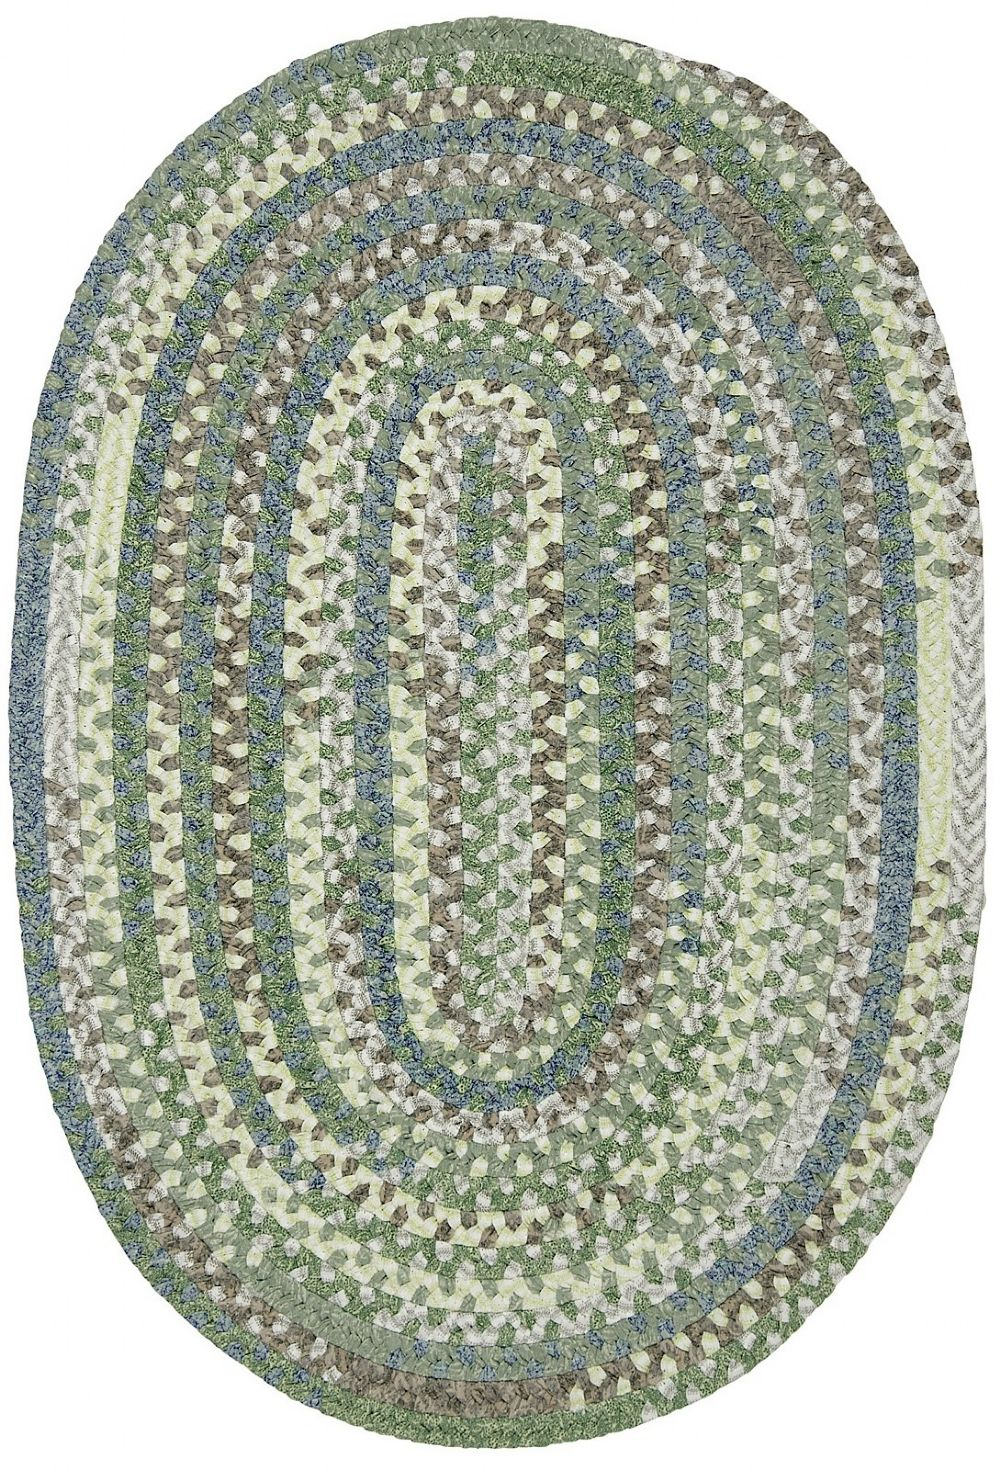 colonial mills rag-time braided area rug collection